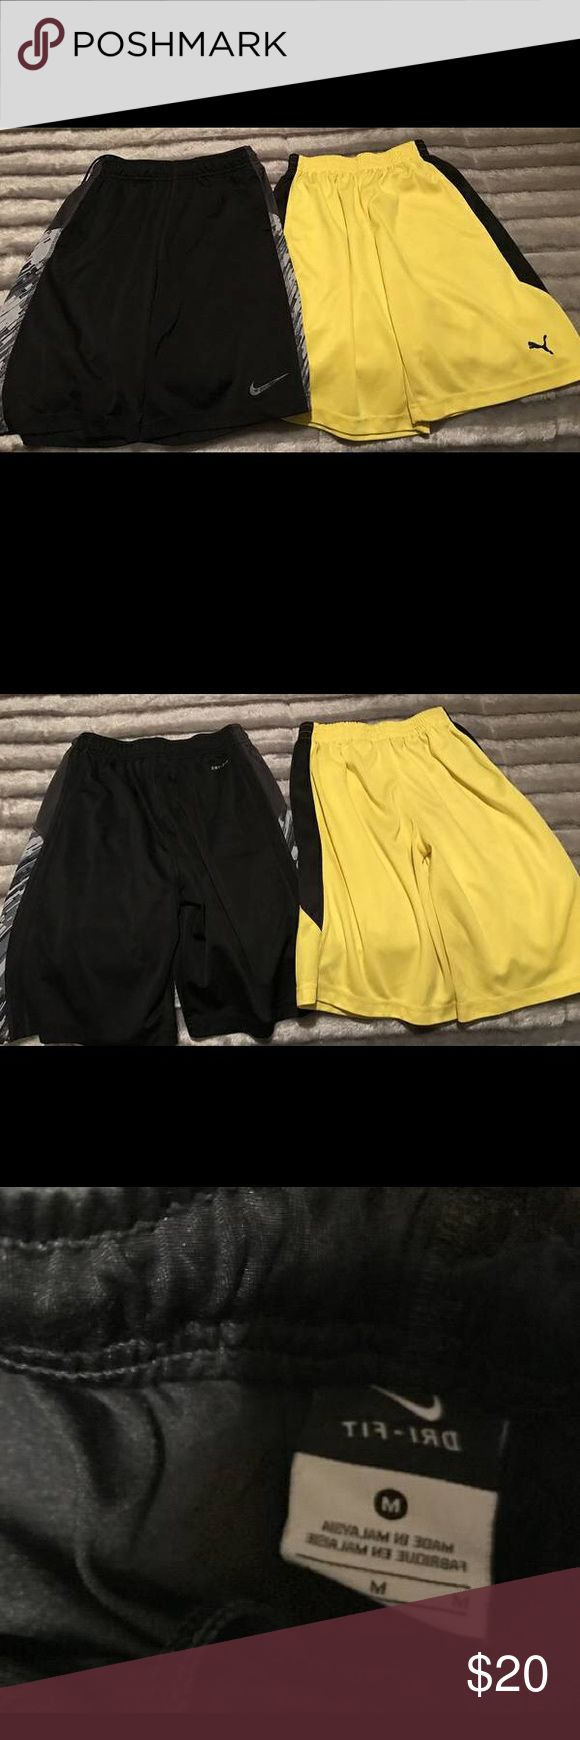 Two Boys Nike Shorts Both are a size medium, one is black, No holes or stains, Like New, other is bright yellow & black, brand is Puma, no stains or holes, small snag on the back at the top right side, both for 20!! Nike Bottoms Shorts